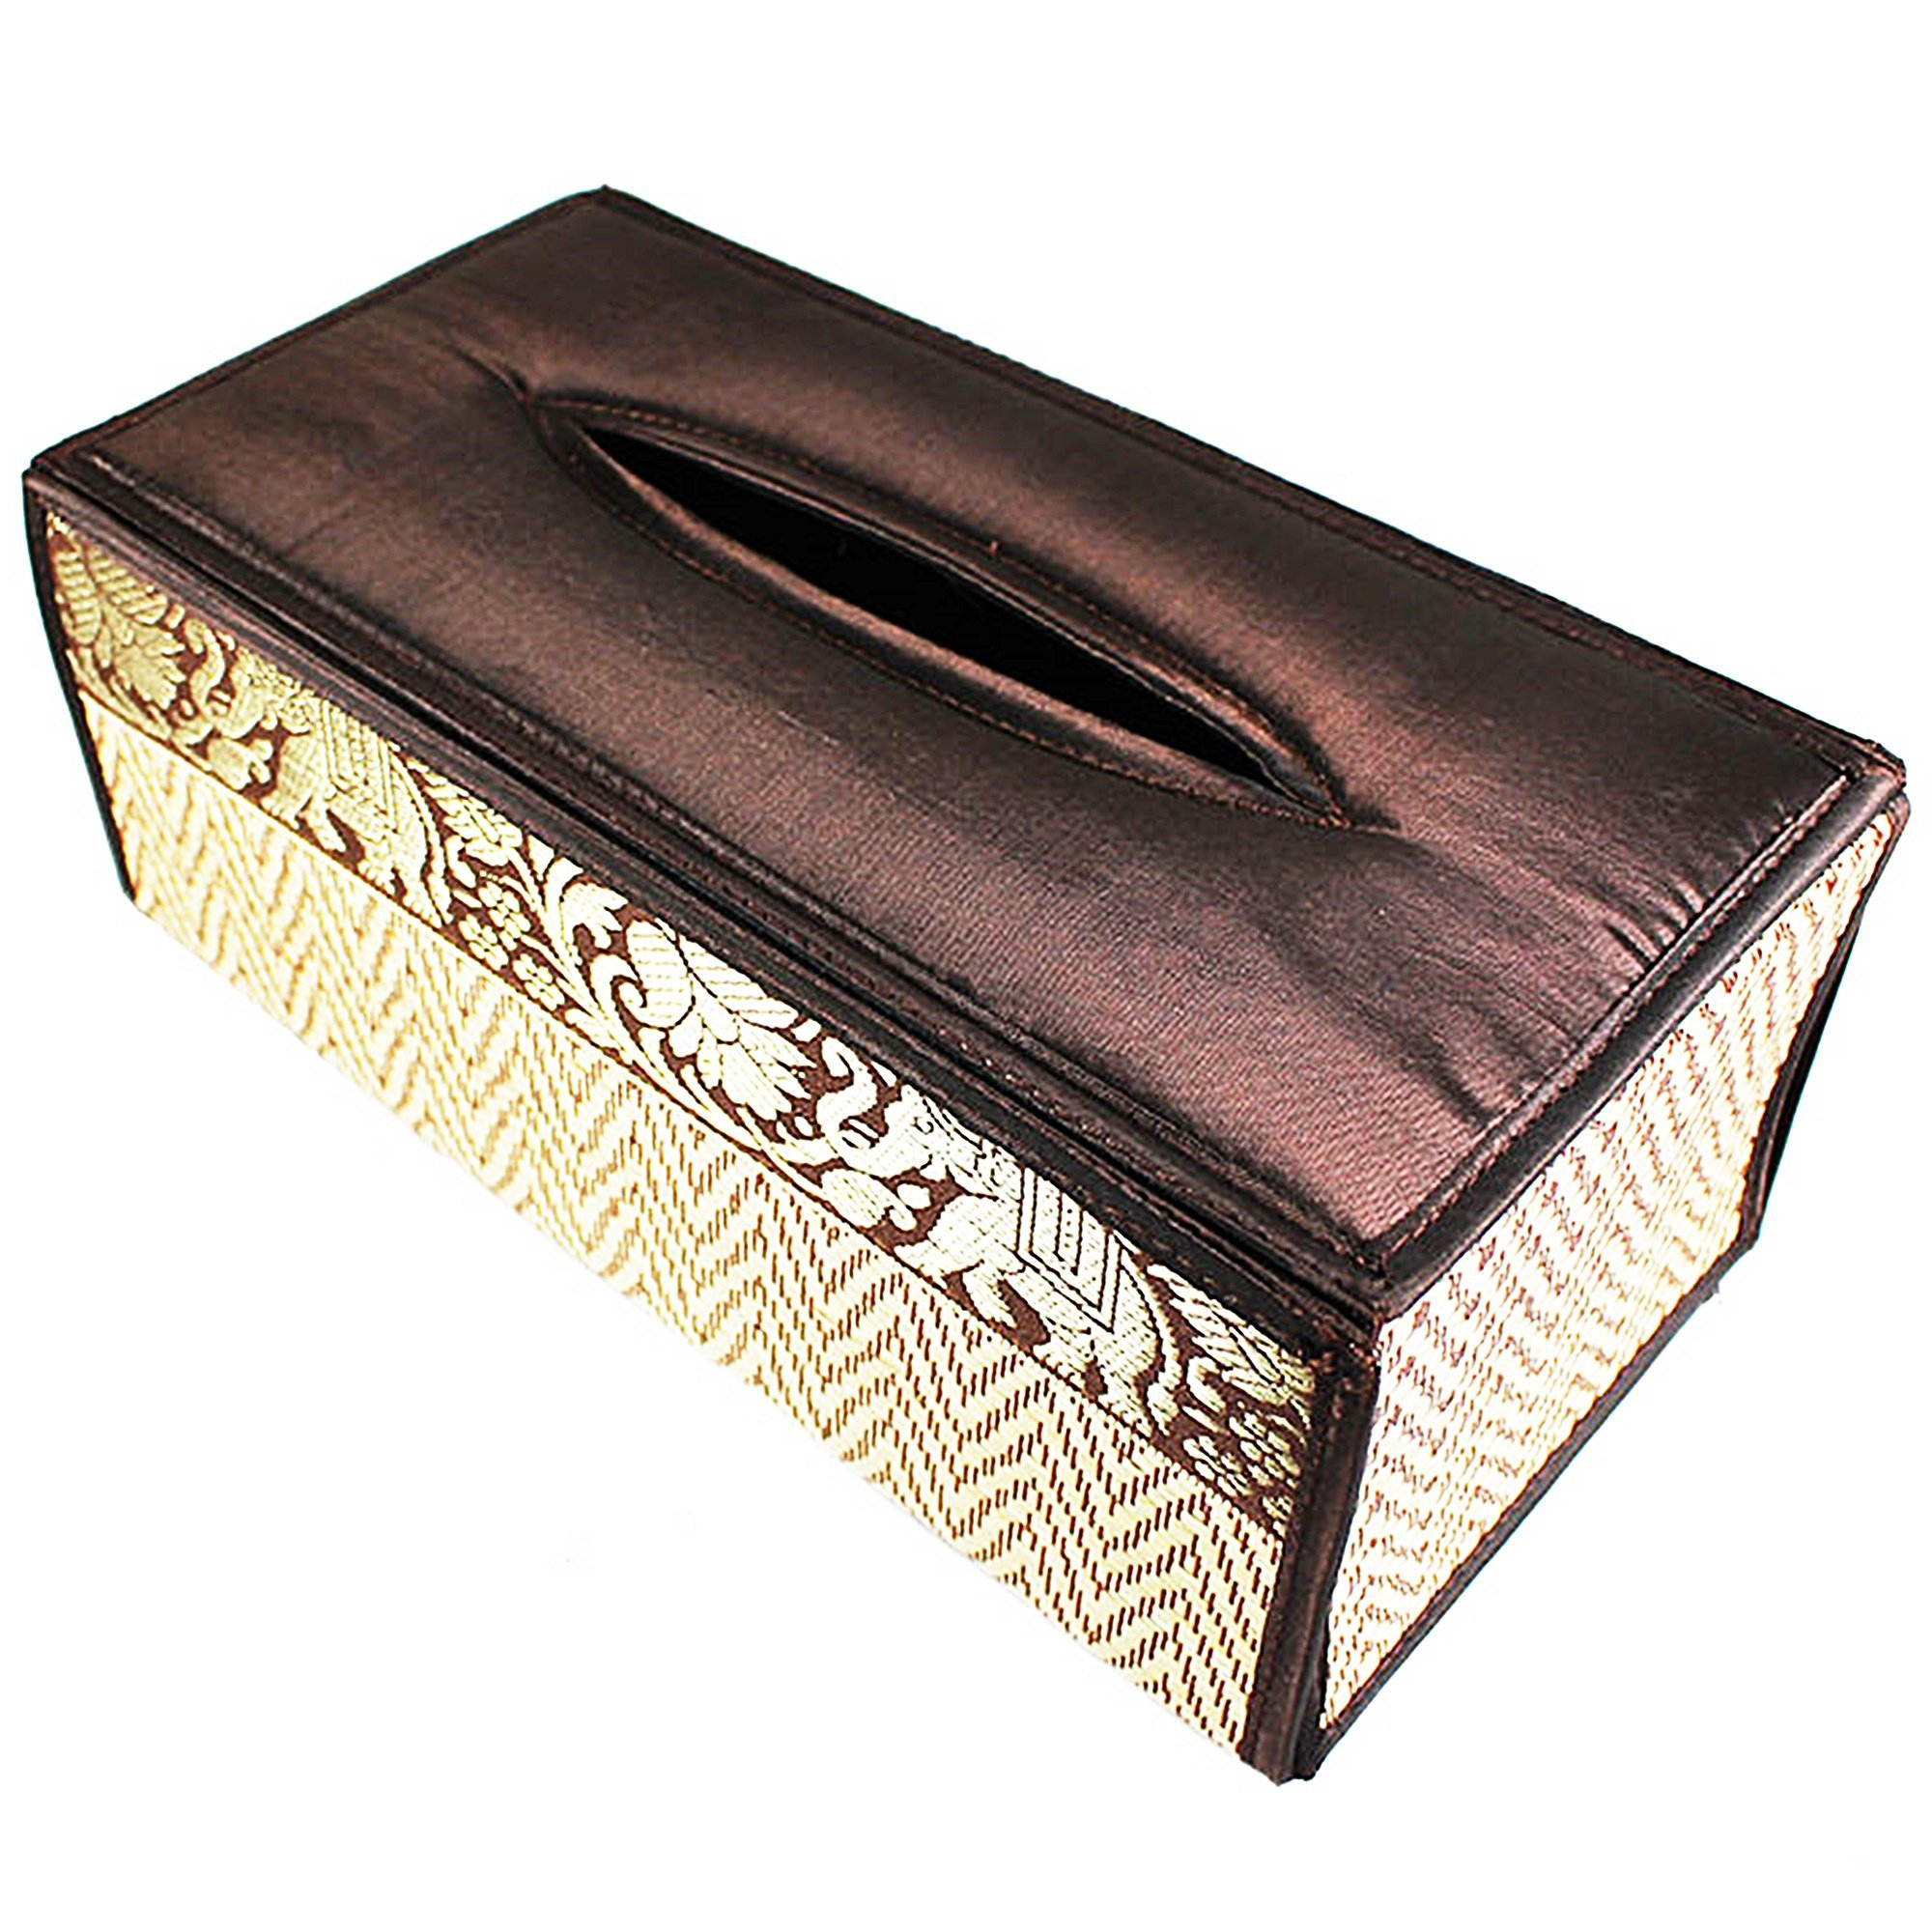 chantubtimplaza Tissue Box Cover Thai Handicraft Elephant Silk Reed Black Color Handmade Home Decor by chantubtimplaza